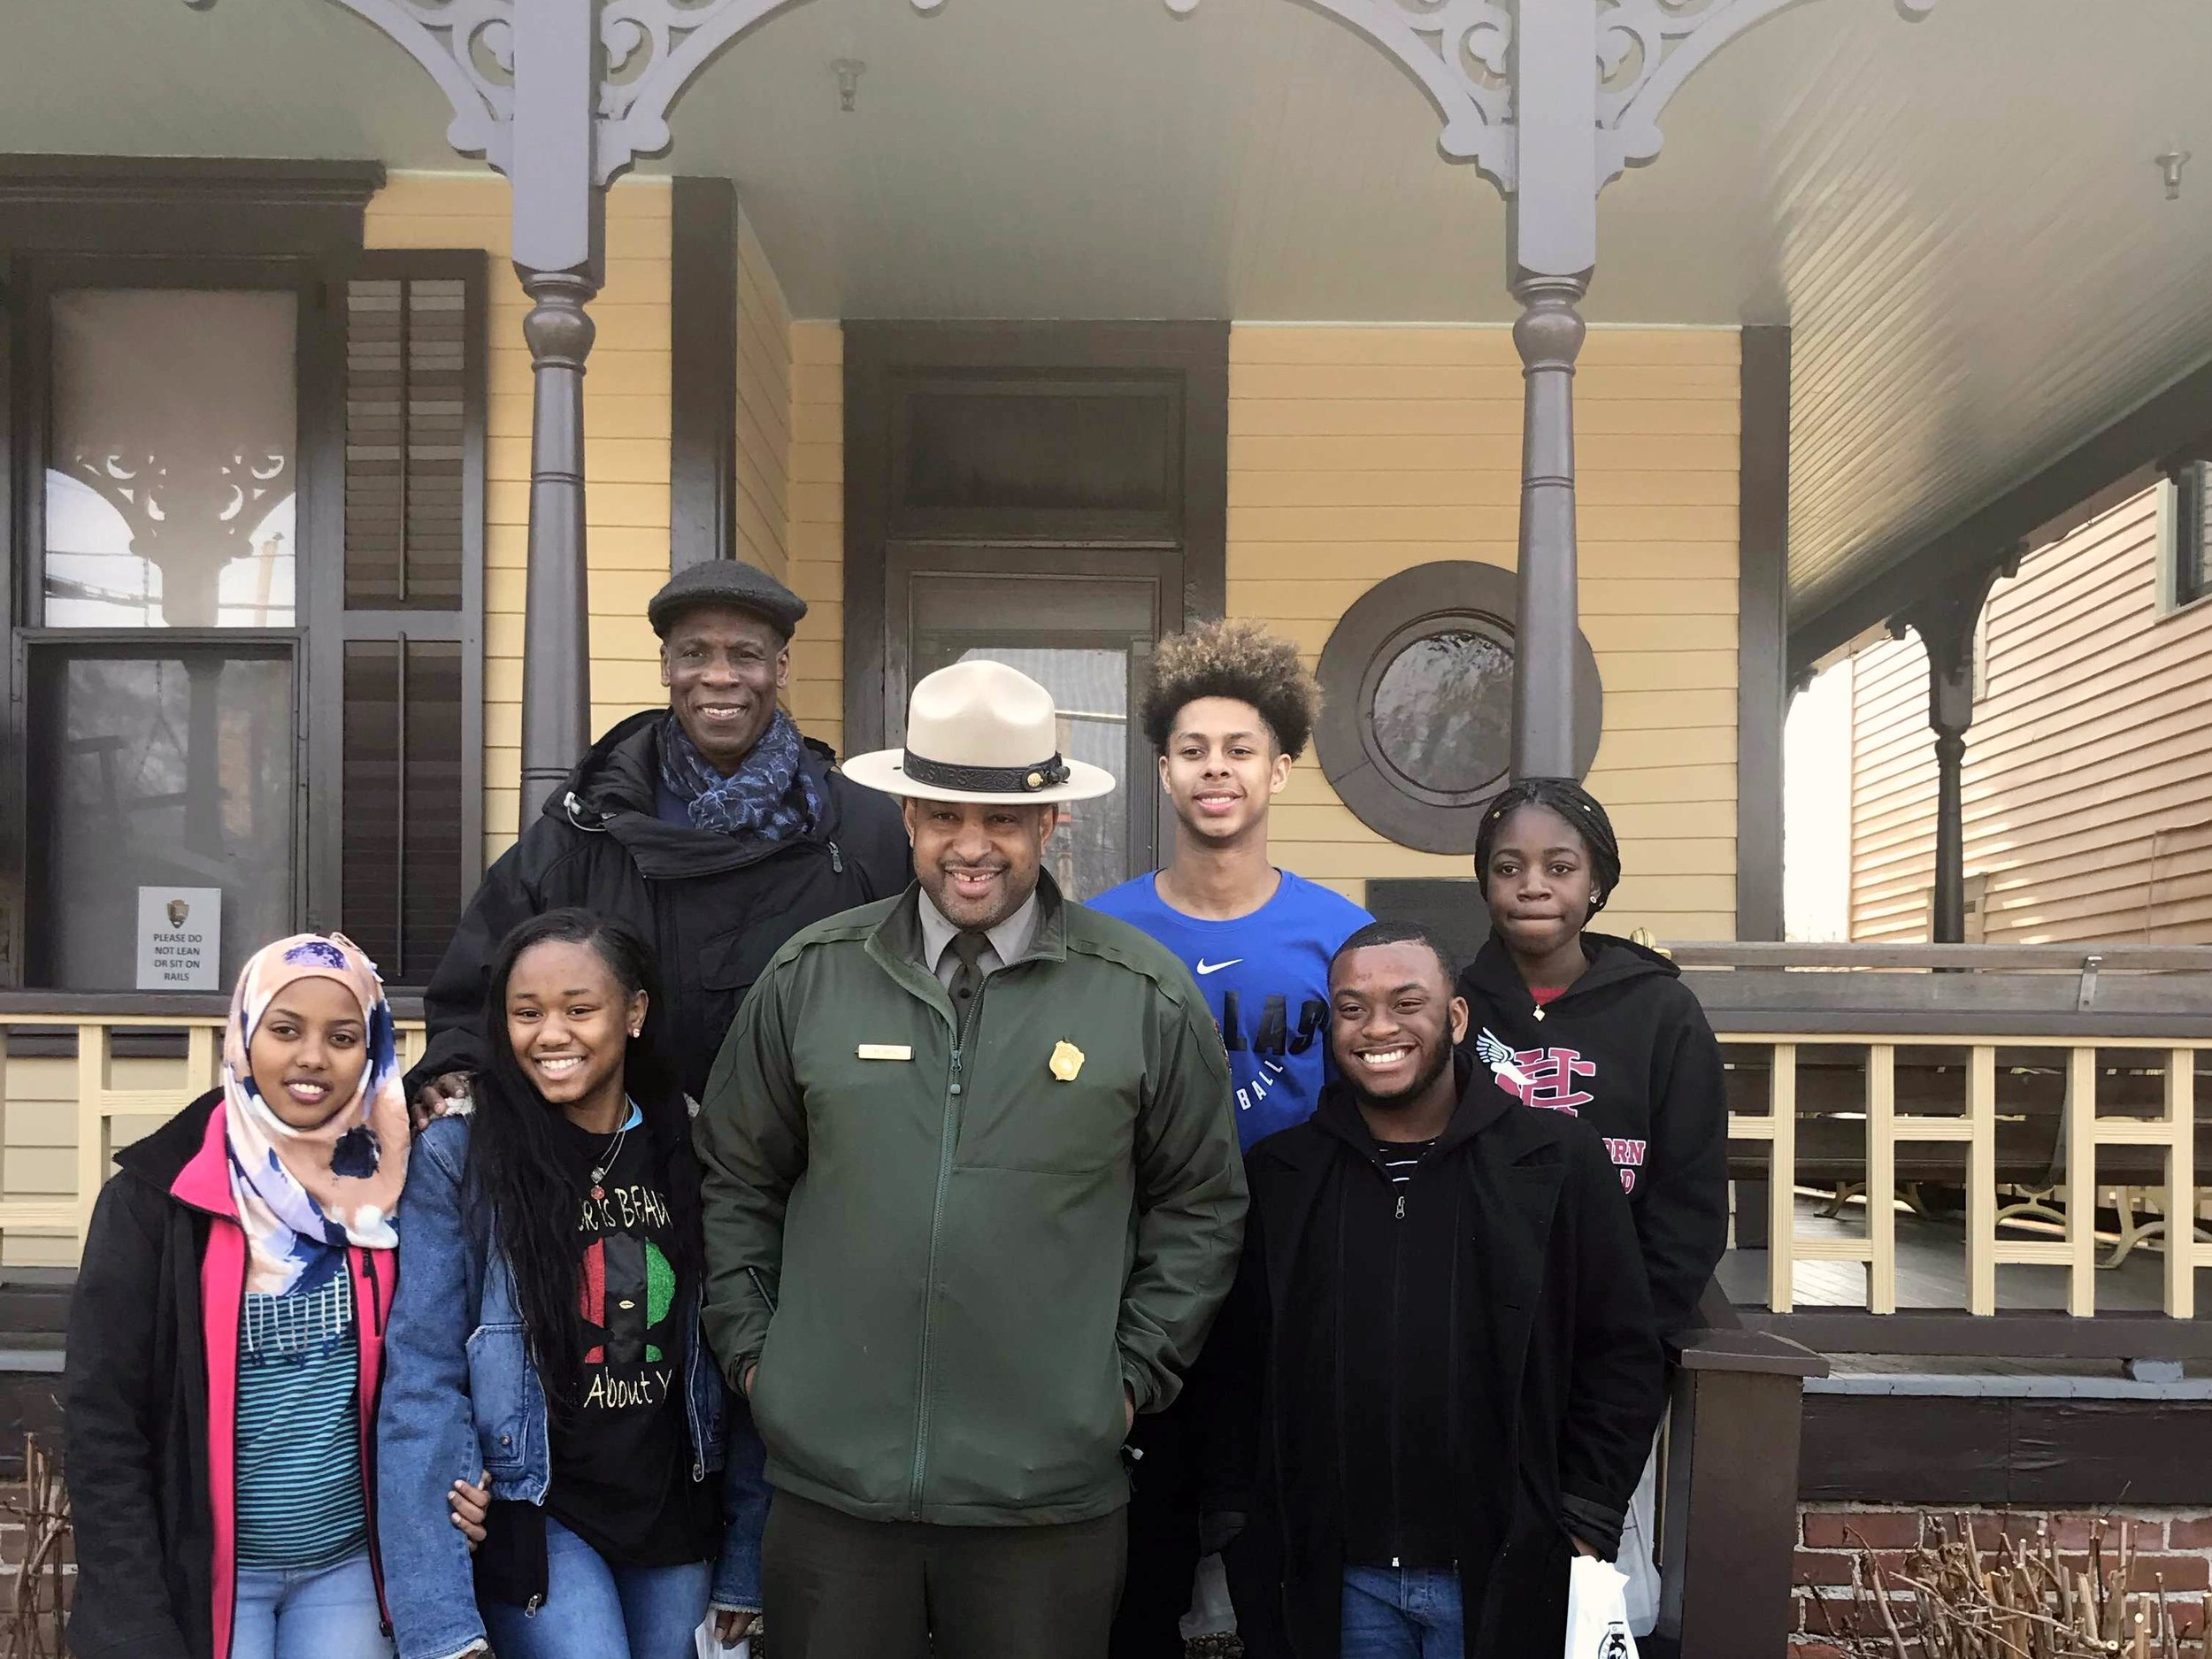 The group of contest winners and their guide in front of MLK's home.